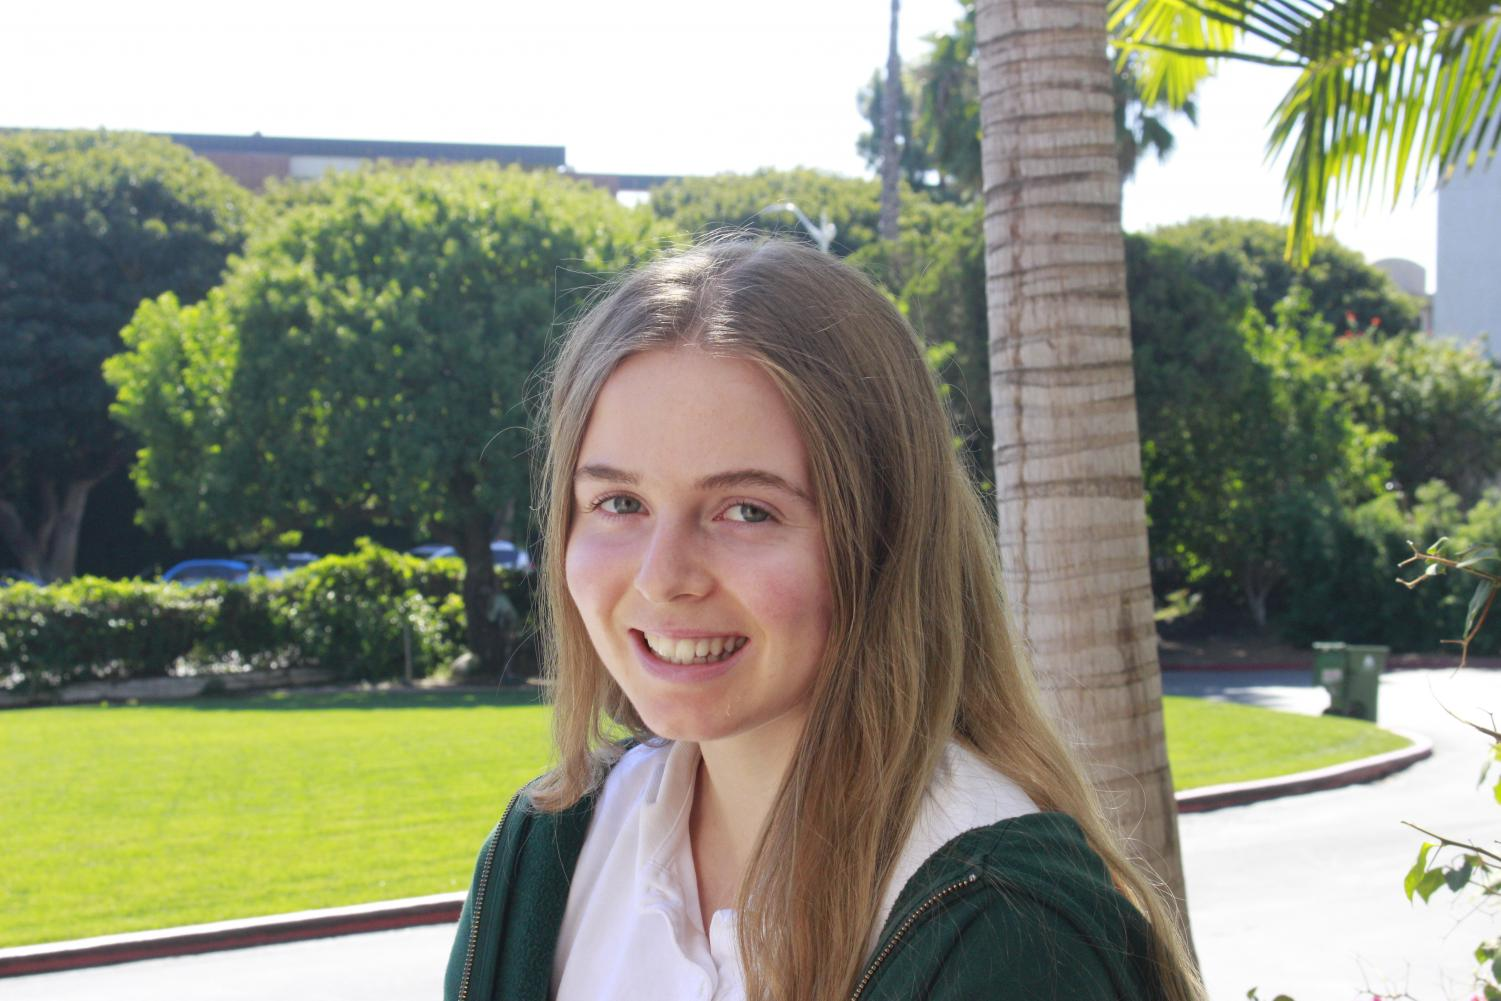 Stella Kraus of the class of 2020 is the only senior to be named as a National Merit Scholarship Semifinalist. She participates in a multitude of STEM-related clubs and the soccer team, in addition to playing the piano.